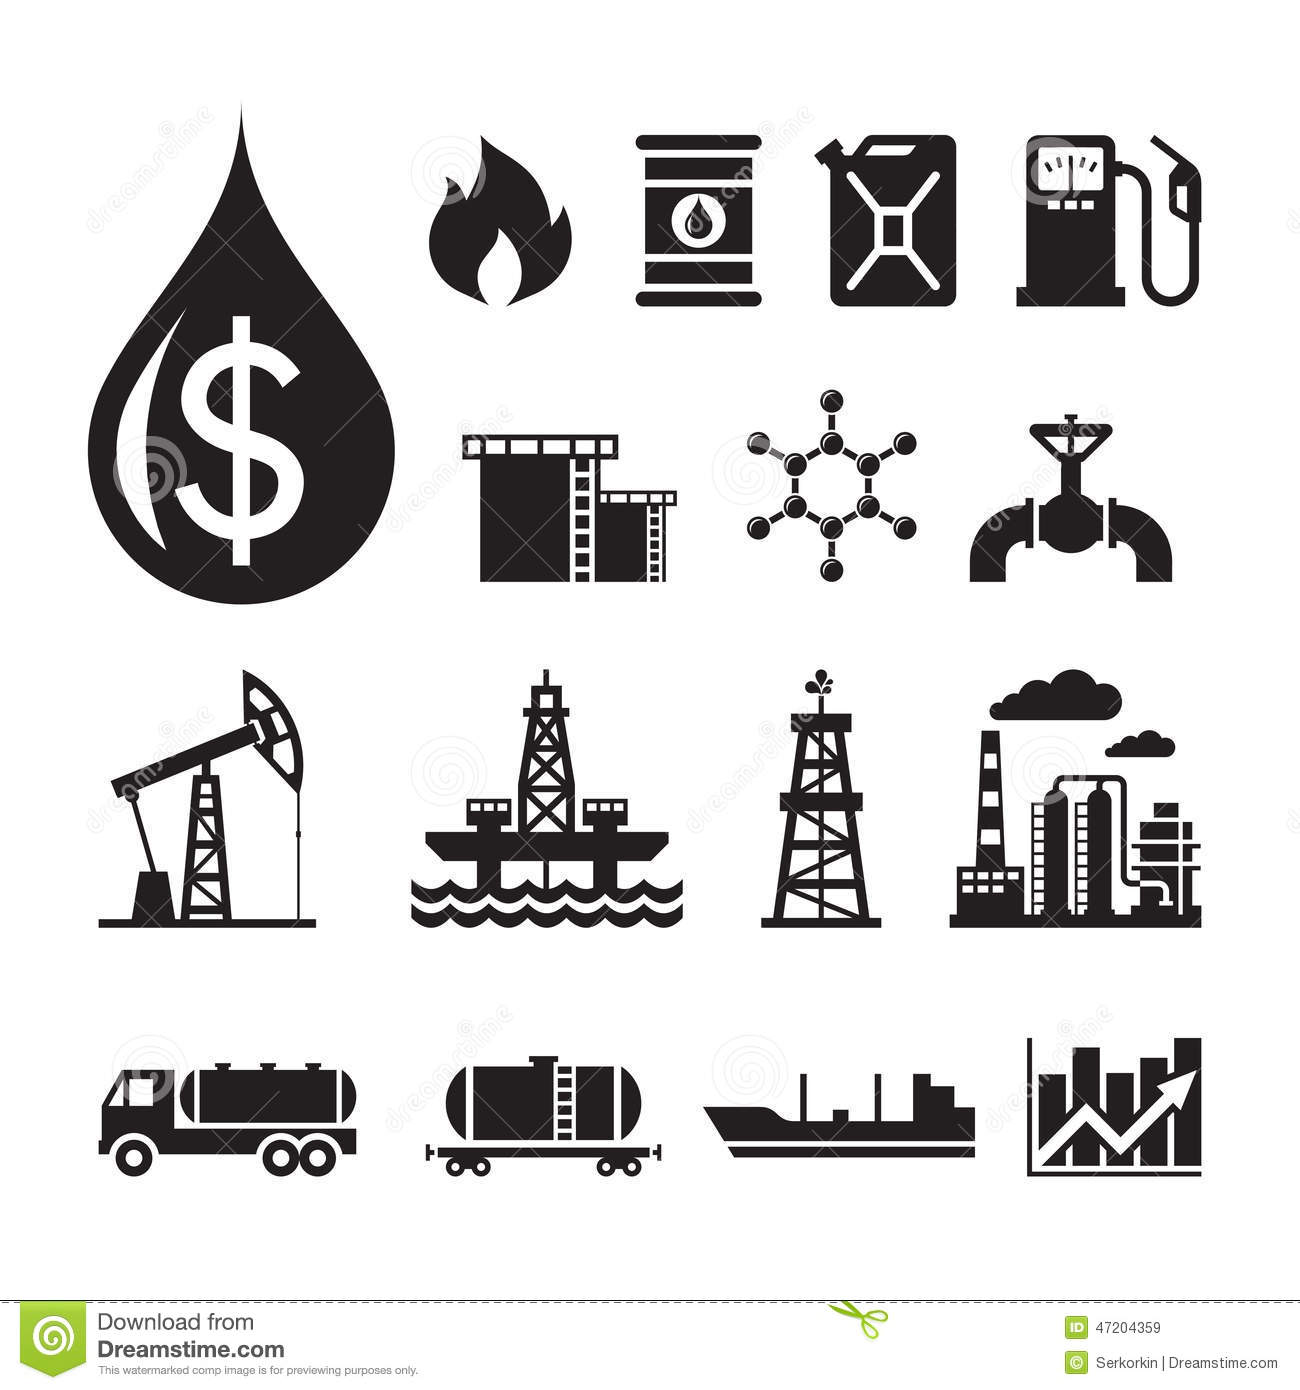 16 Oil Industry Vector Icons For Infographic, Business.